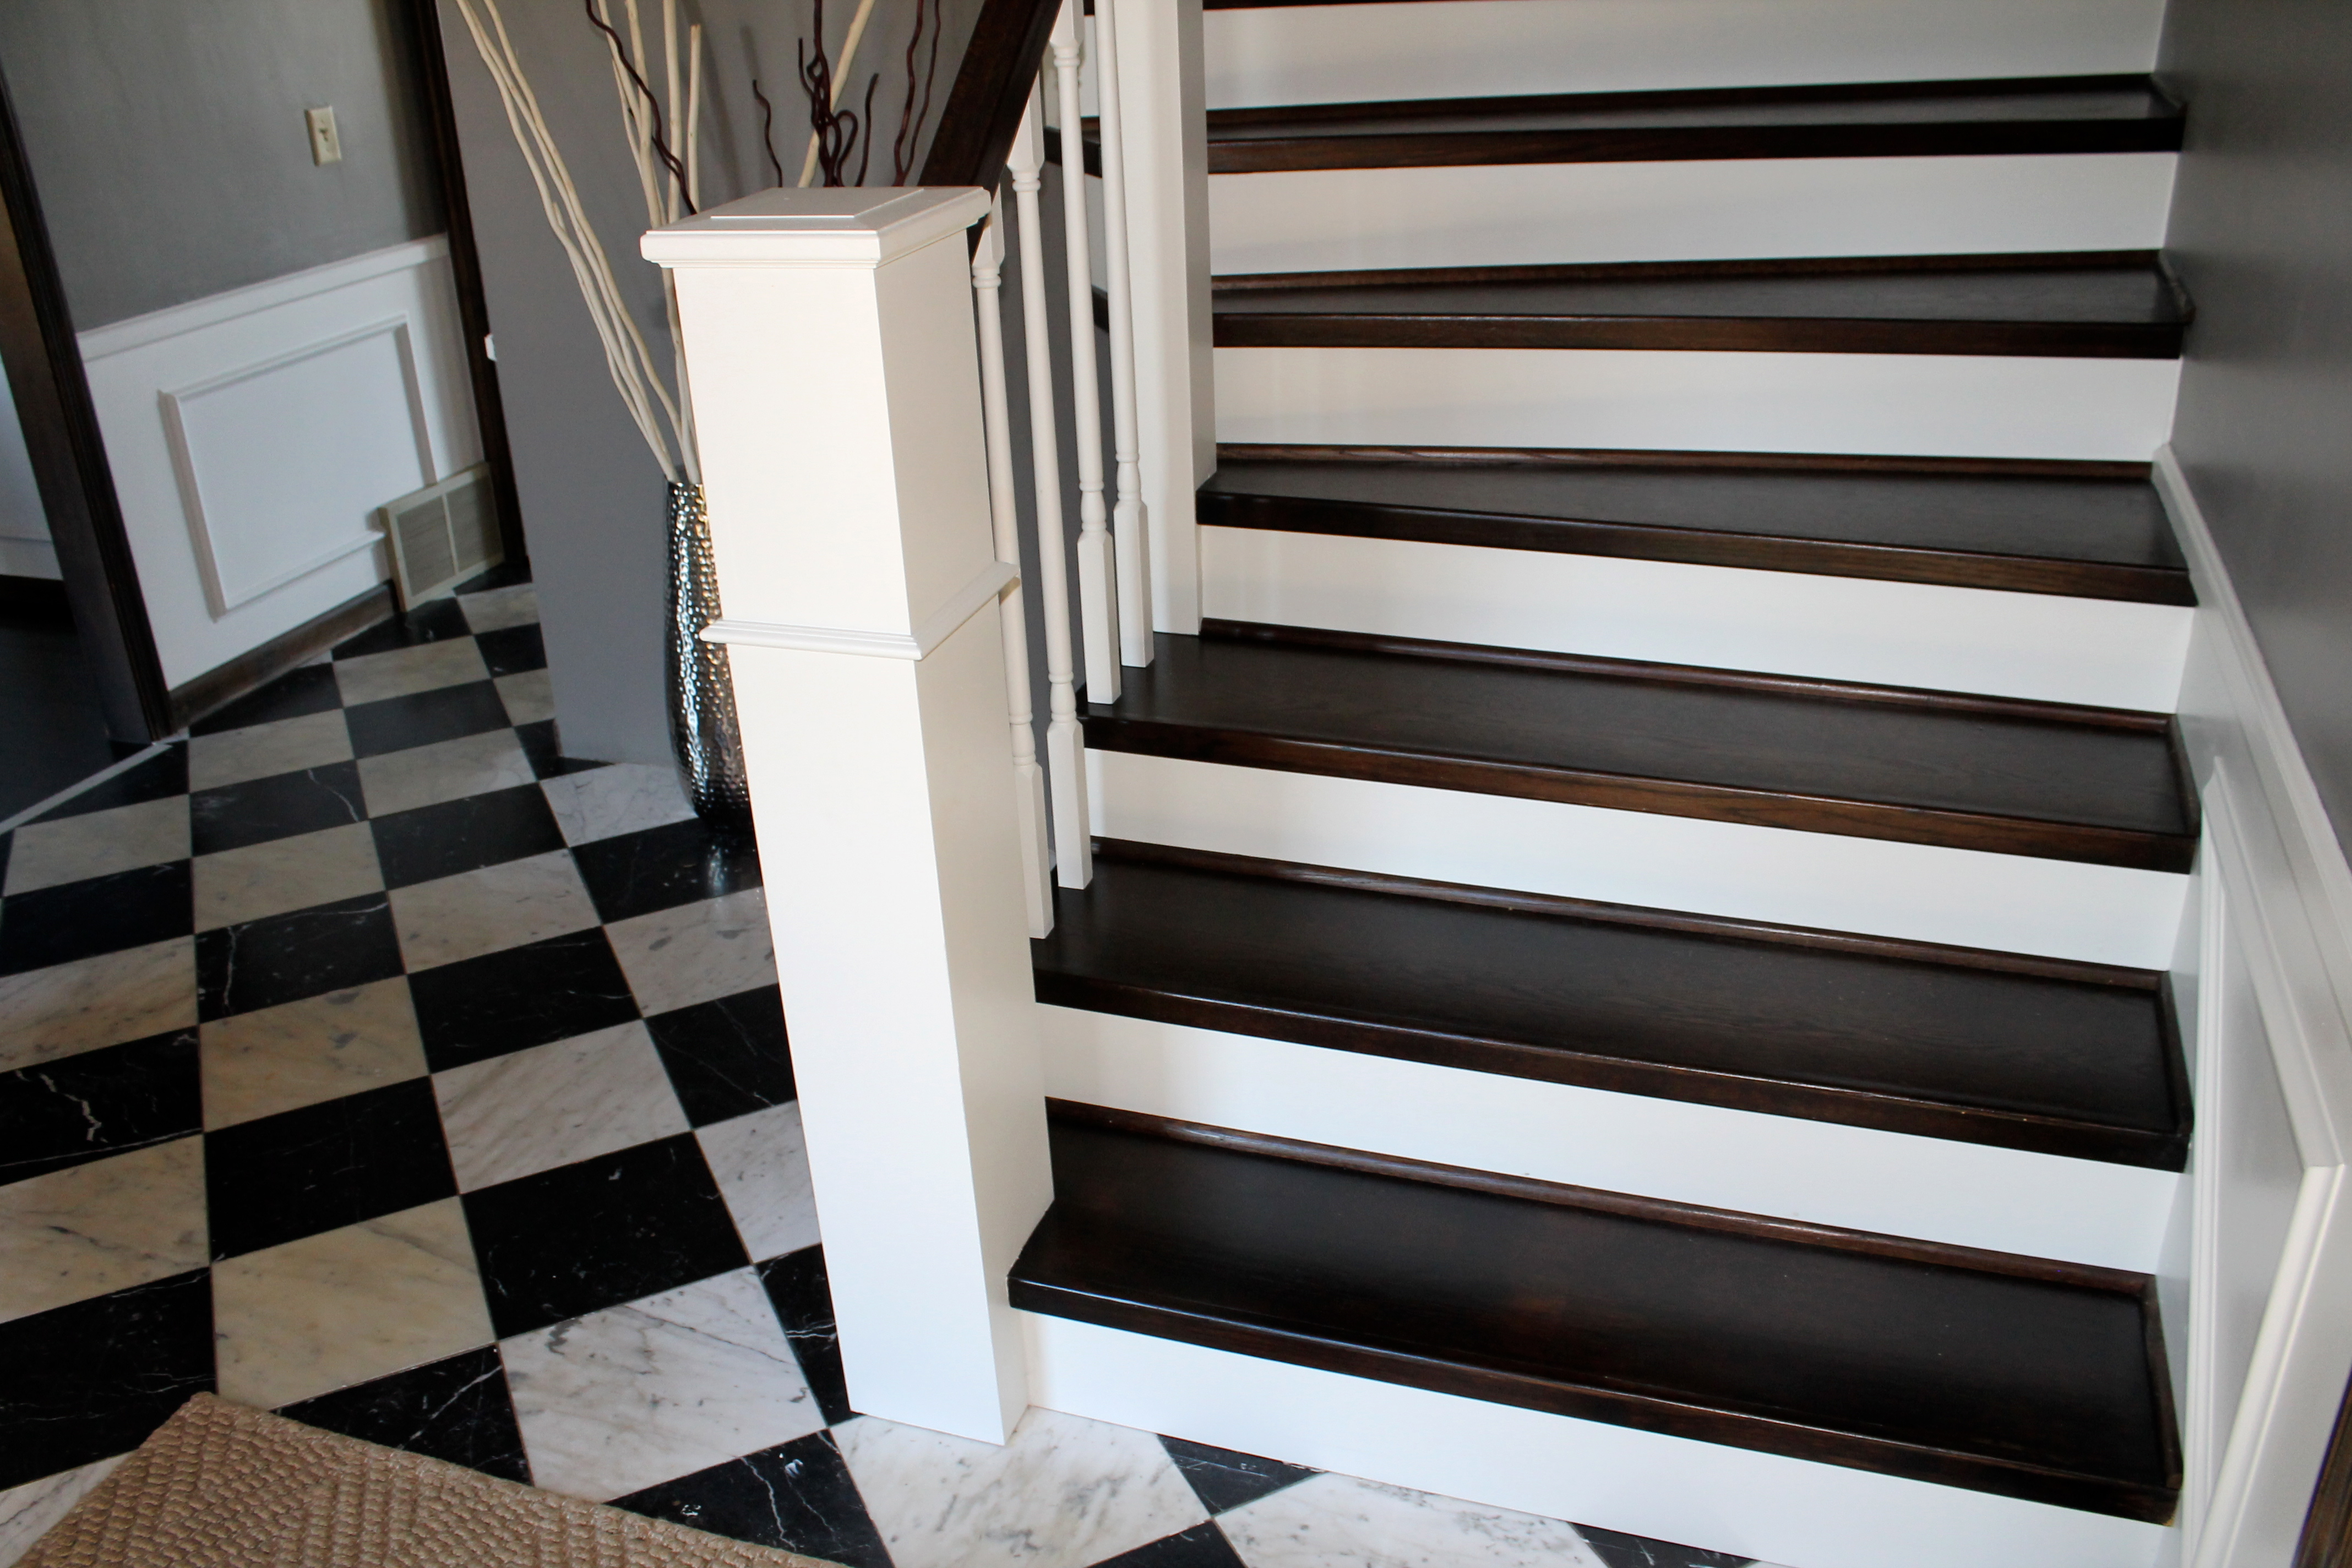 Carpet To Paint And Wood Staircase And Handrail Remodel    Construction2Style Via @Remodelaholic